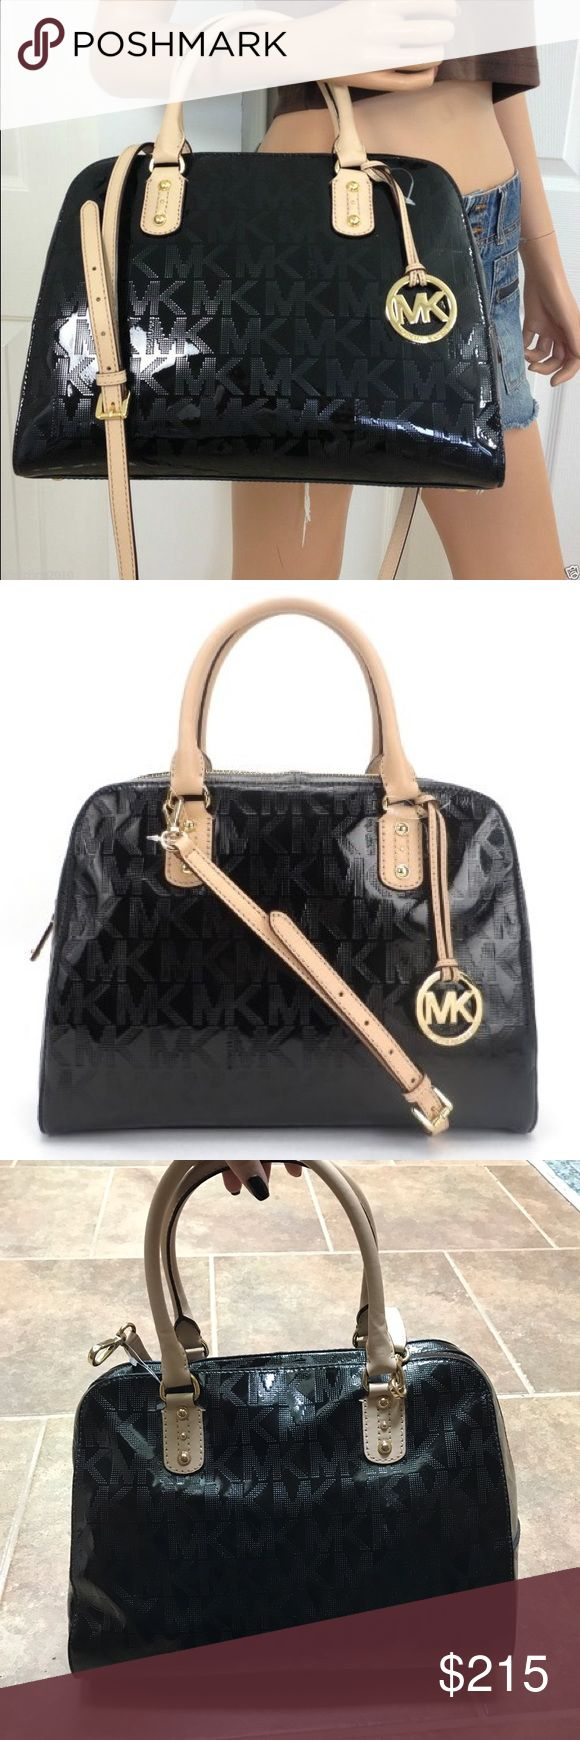 Michael Kors Black Signature Purse Brand: Michael Kors Color: Black Retail: $398 Condition: NWT  ••• Large shiny MK handbag. In PERFECT condition, brand new! Never used- still has tissue paper inside. Very spacious with a pocket on the outside and zip pocket on the inside. Has cross body chain. MK keychain not included. •••  ✨ Check out my closet for more cute items!  I ALWAYS DISCOUNT BUNDLES!  ✨ Brands in my closet include: H&M, Forever 21, Victoria's secret pink, Nike, topshop, Free…